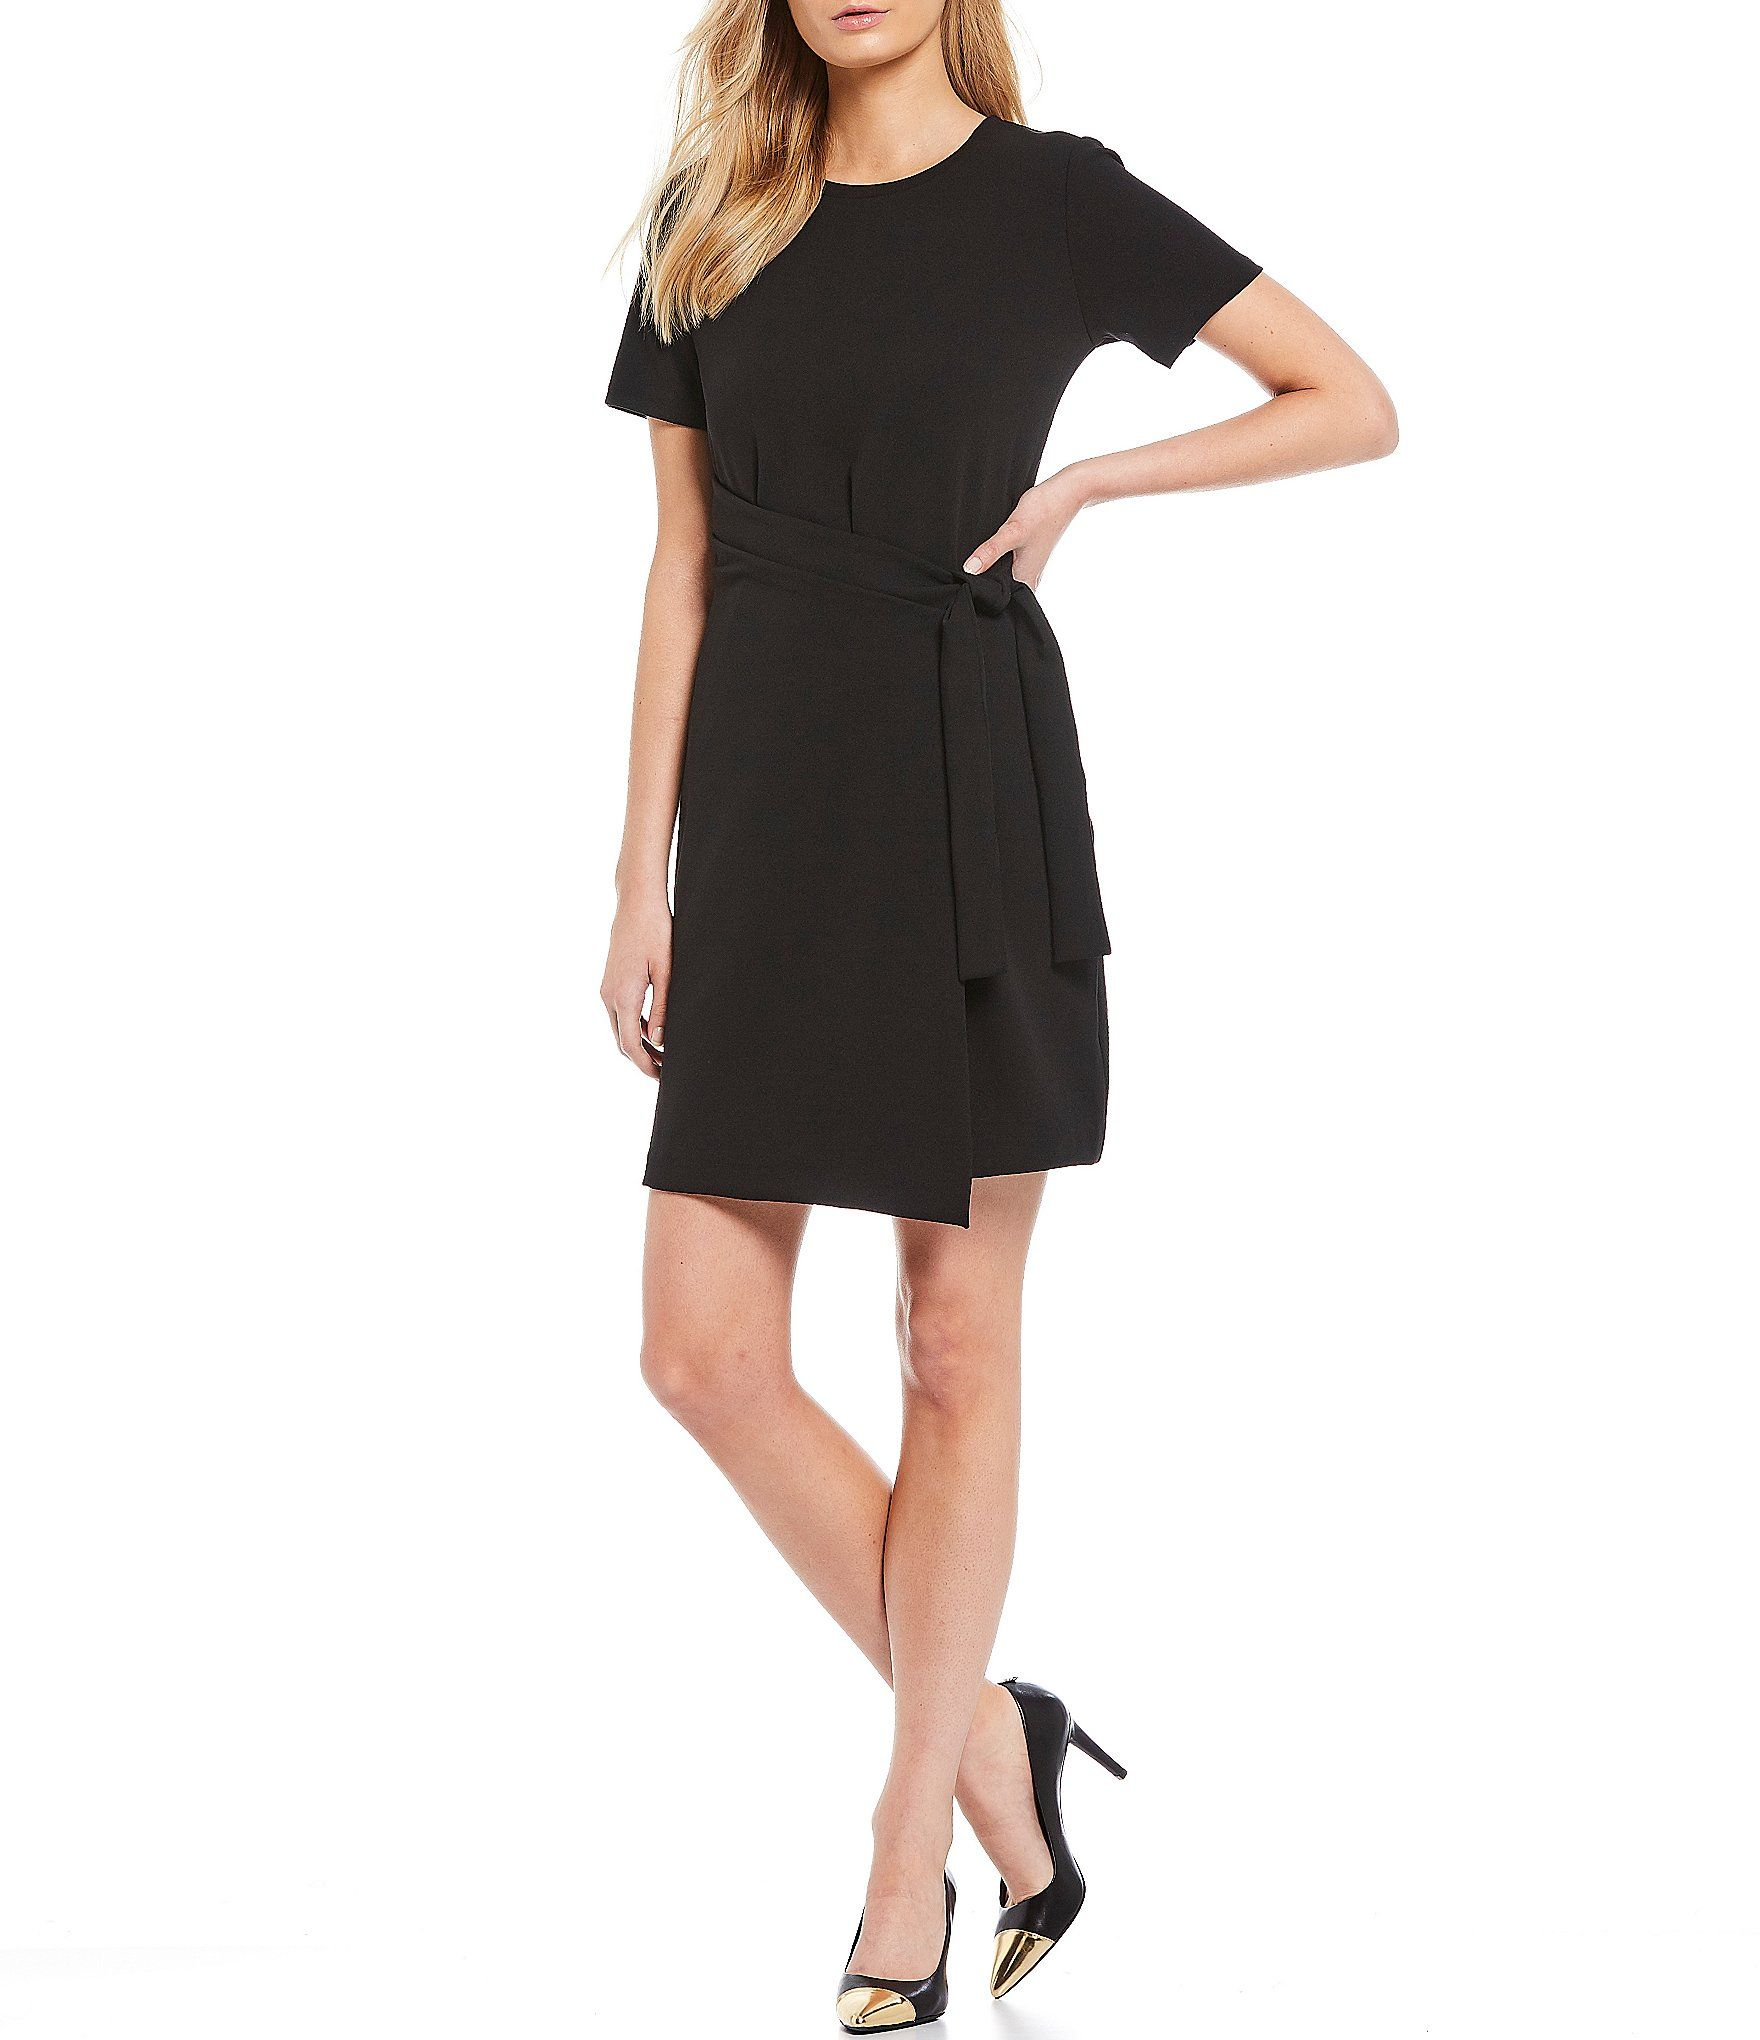 Pin By Sarah Mac On Business Wardrobe Over 50 Wrap Dress Dresses Edgy Outfits [ 2040 x 1760 Pixel ]